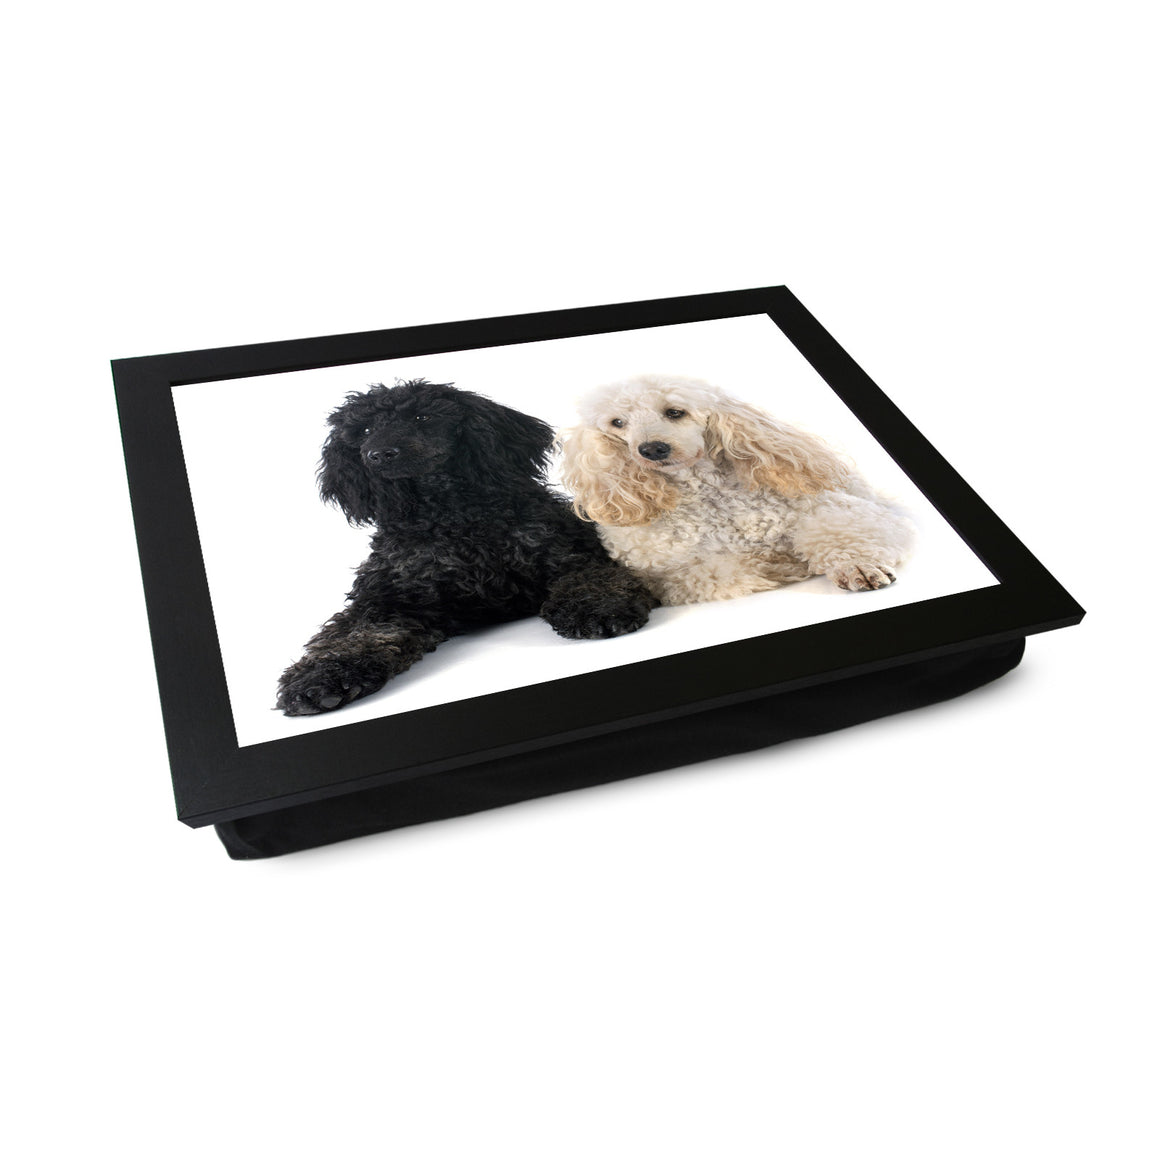 Black & White Poodle Dogs Lap Tray - L0110